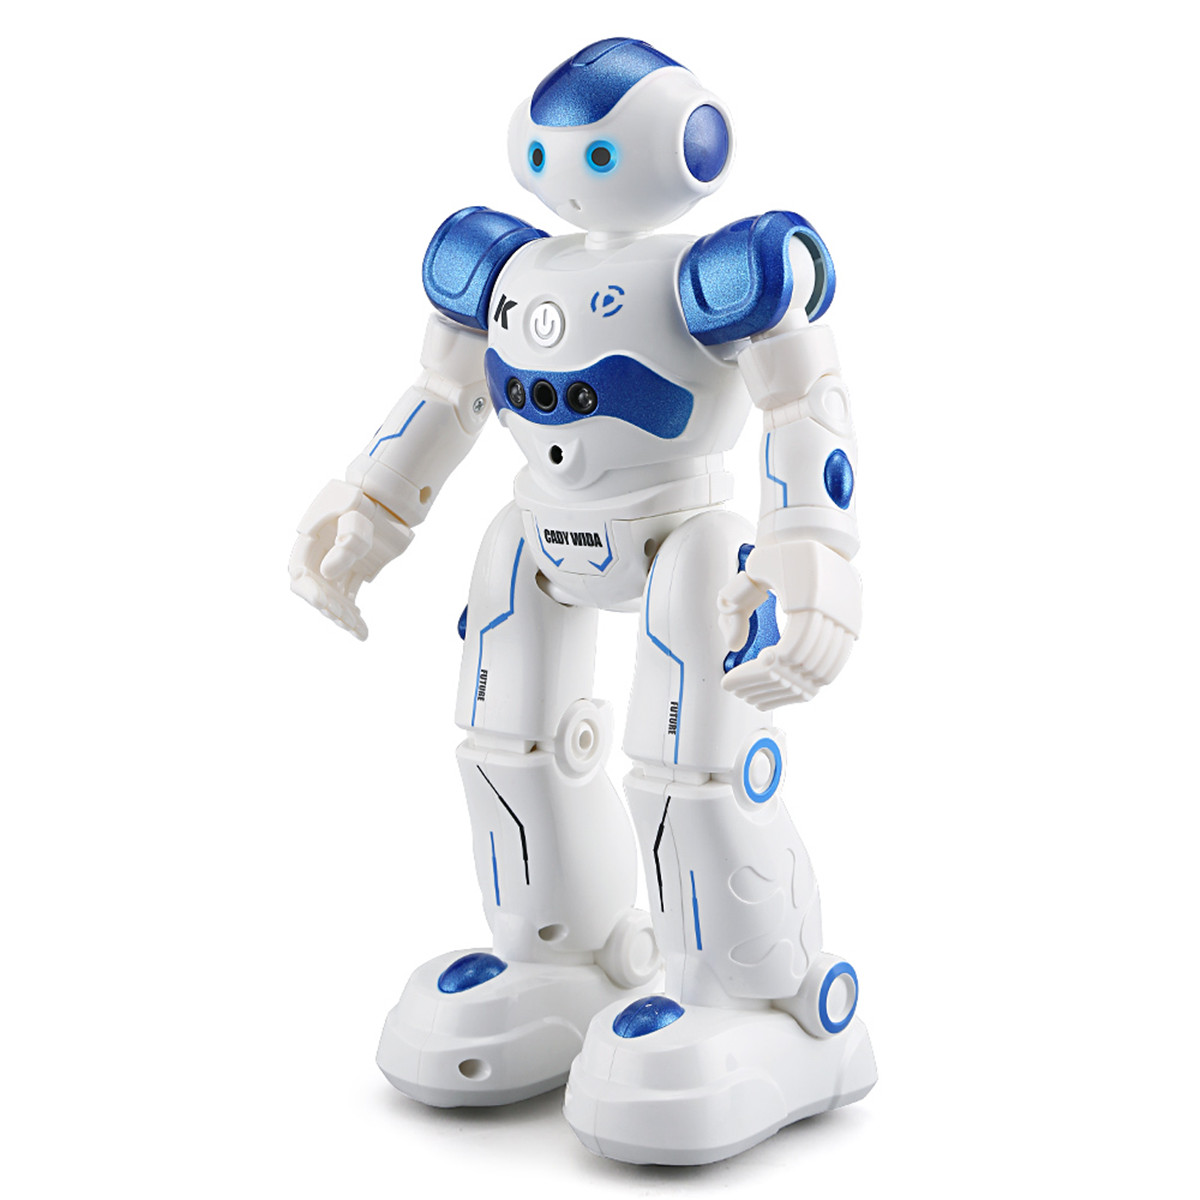 Fansaco Intelligent Voice Robot Dancing Toy Gesture Control Rc Robot Action Figure Programming Birthday Gift For Kids Children Fashionable In Style;